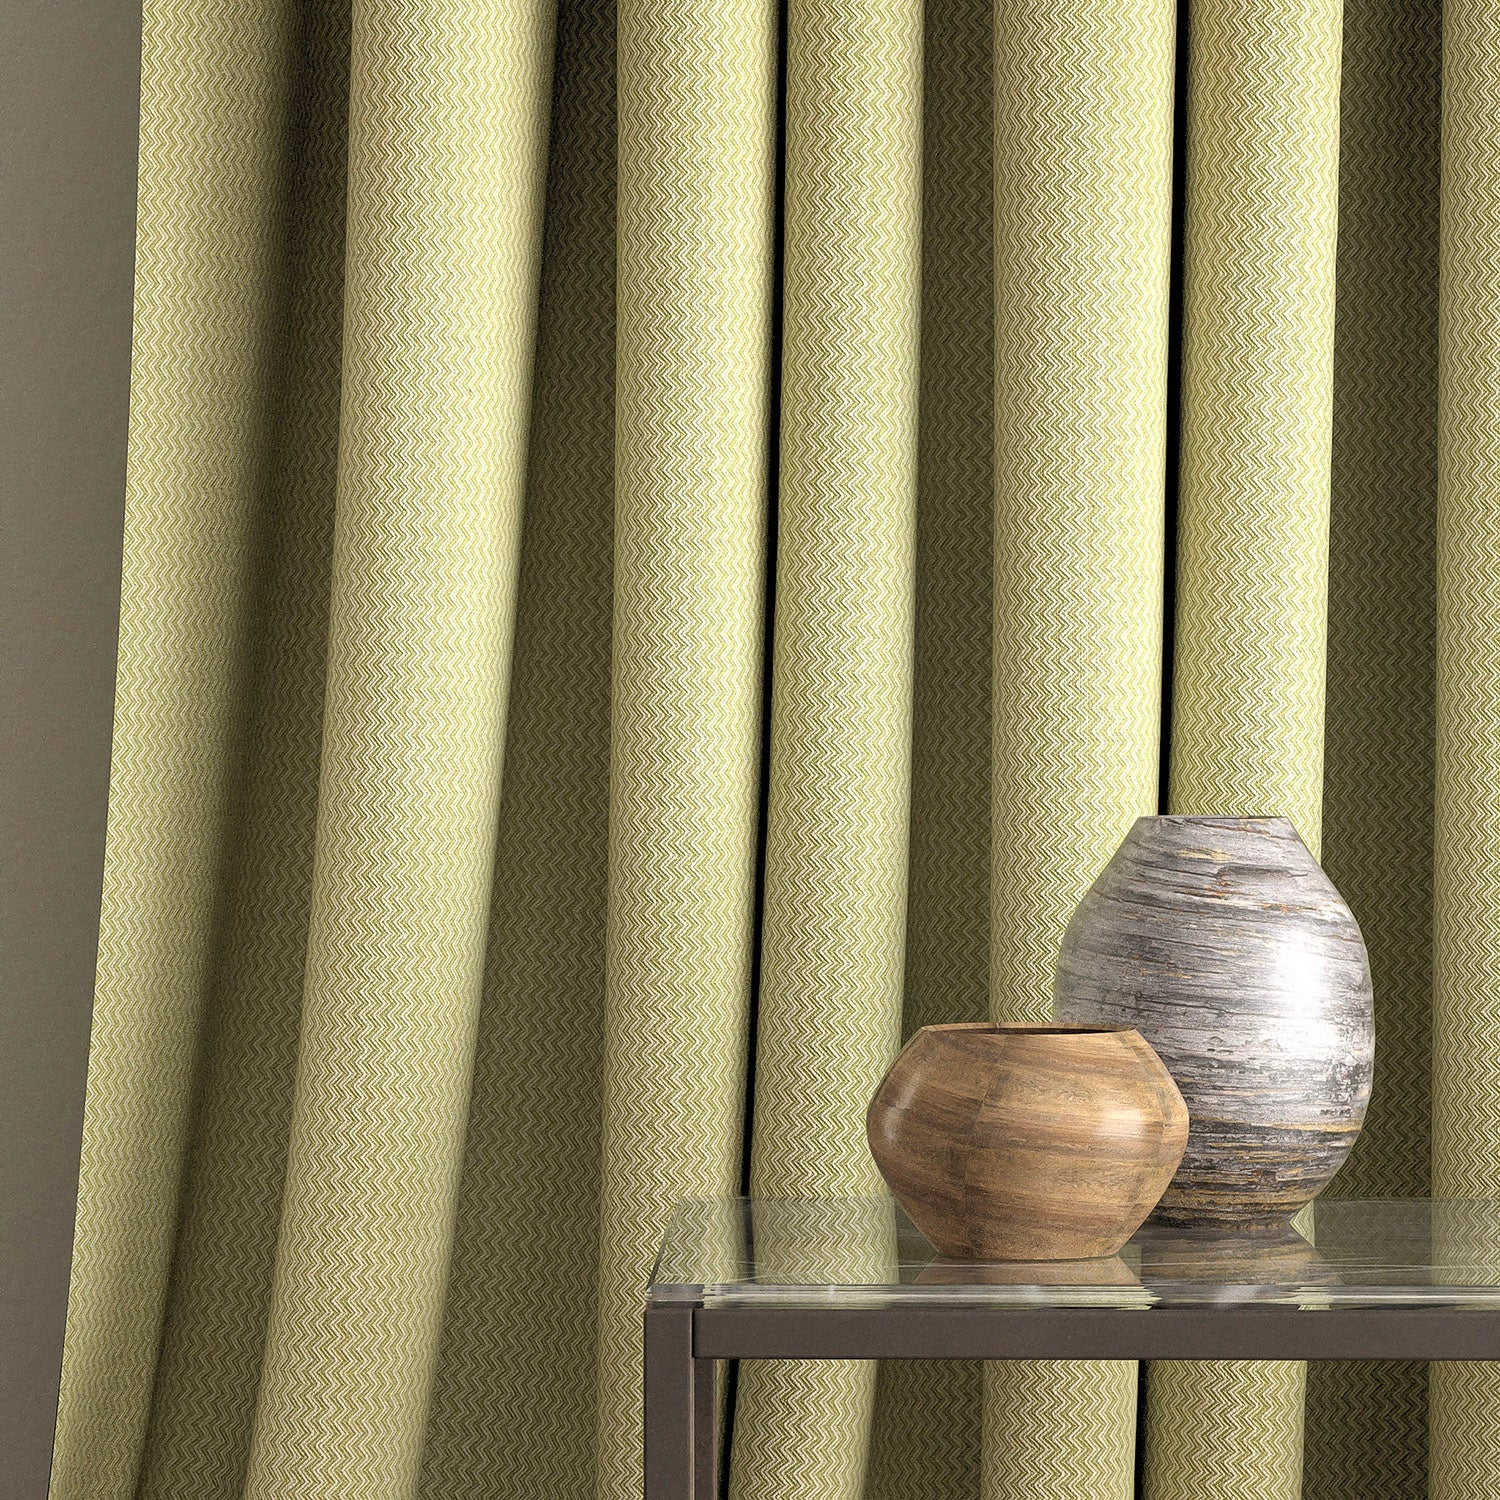 Curtain in a green fabric with chevron weave and stain resistant finish